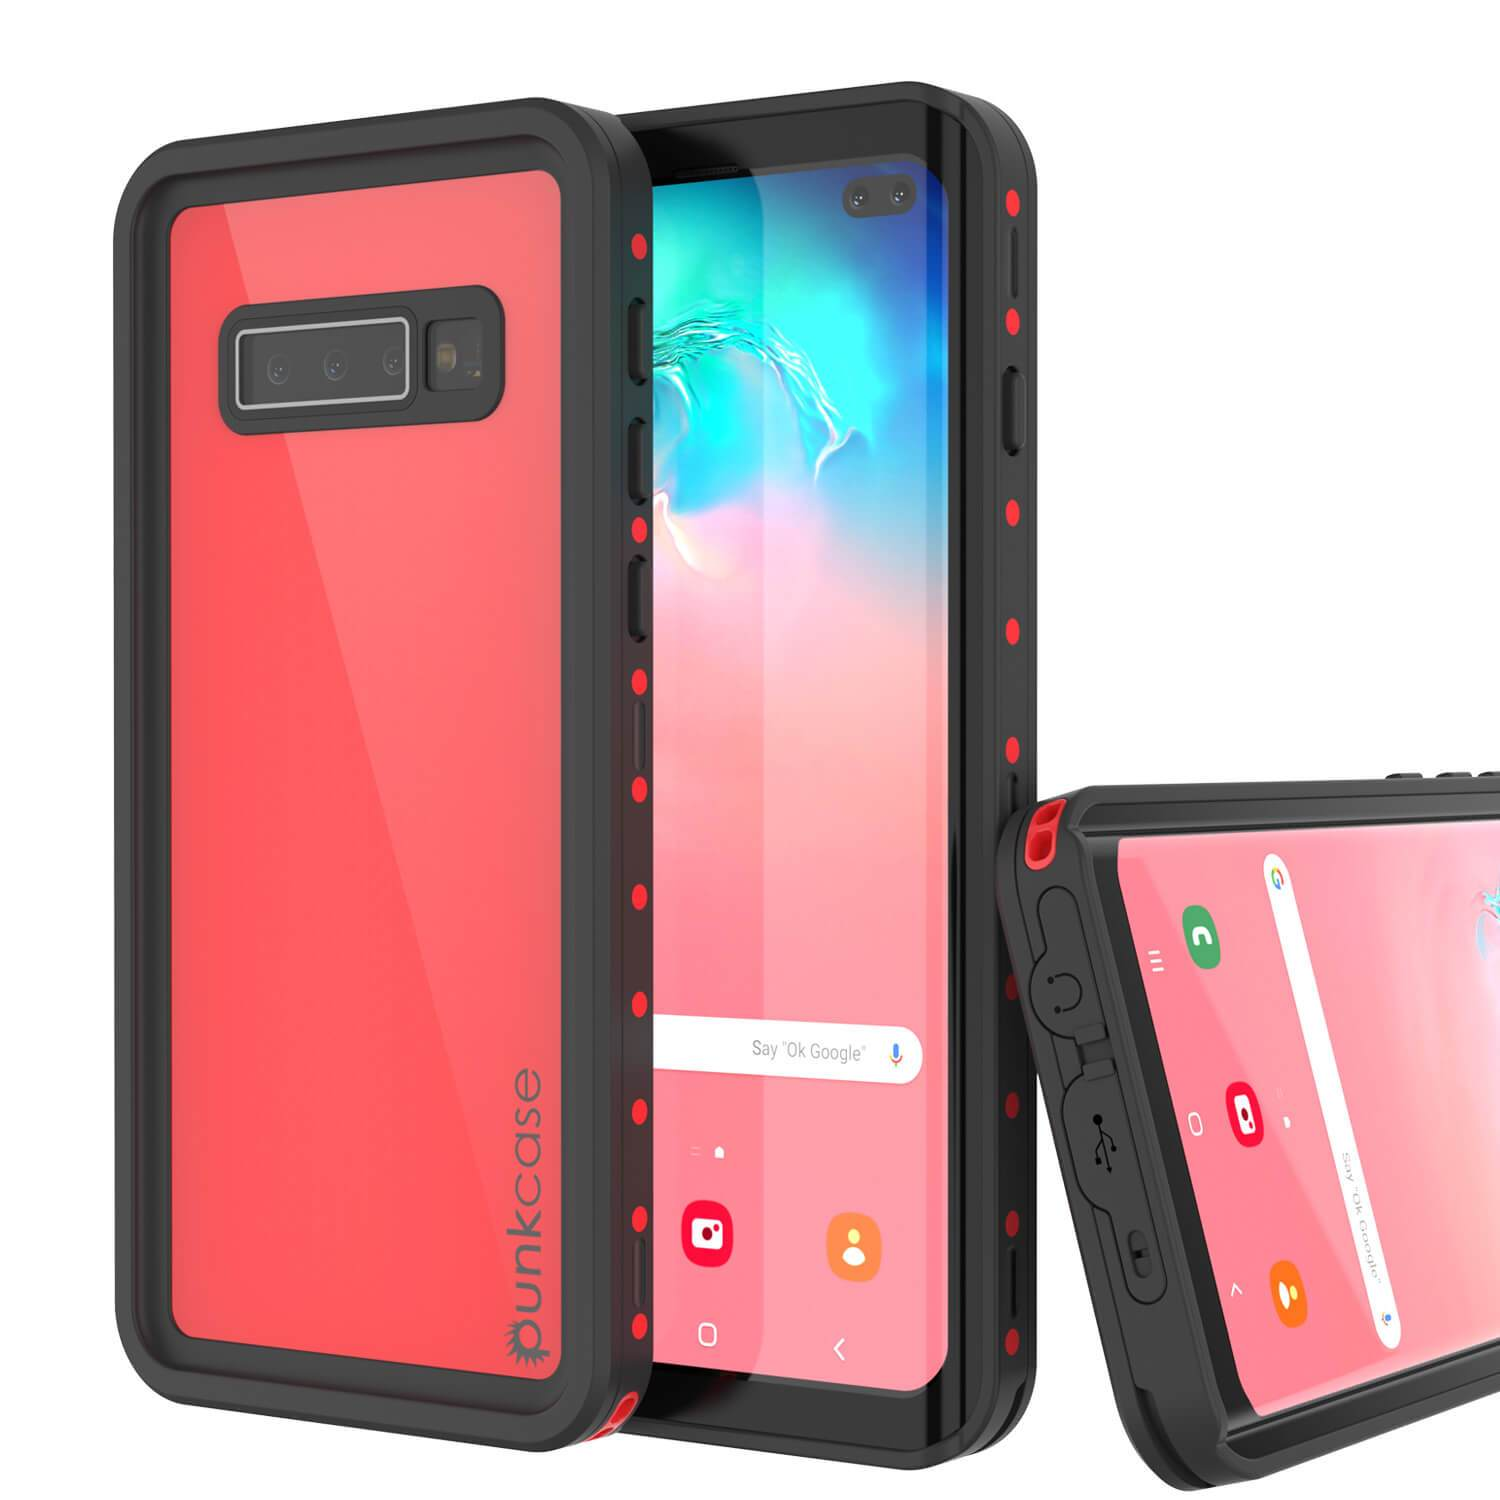 Galaxy S10e Waterproof Case PunkCase StudStar Red Thin 6.6ft Underwater IP68 Shock/Snow Proof